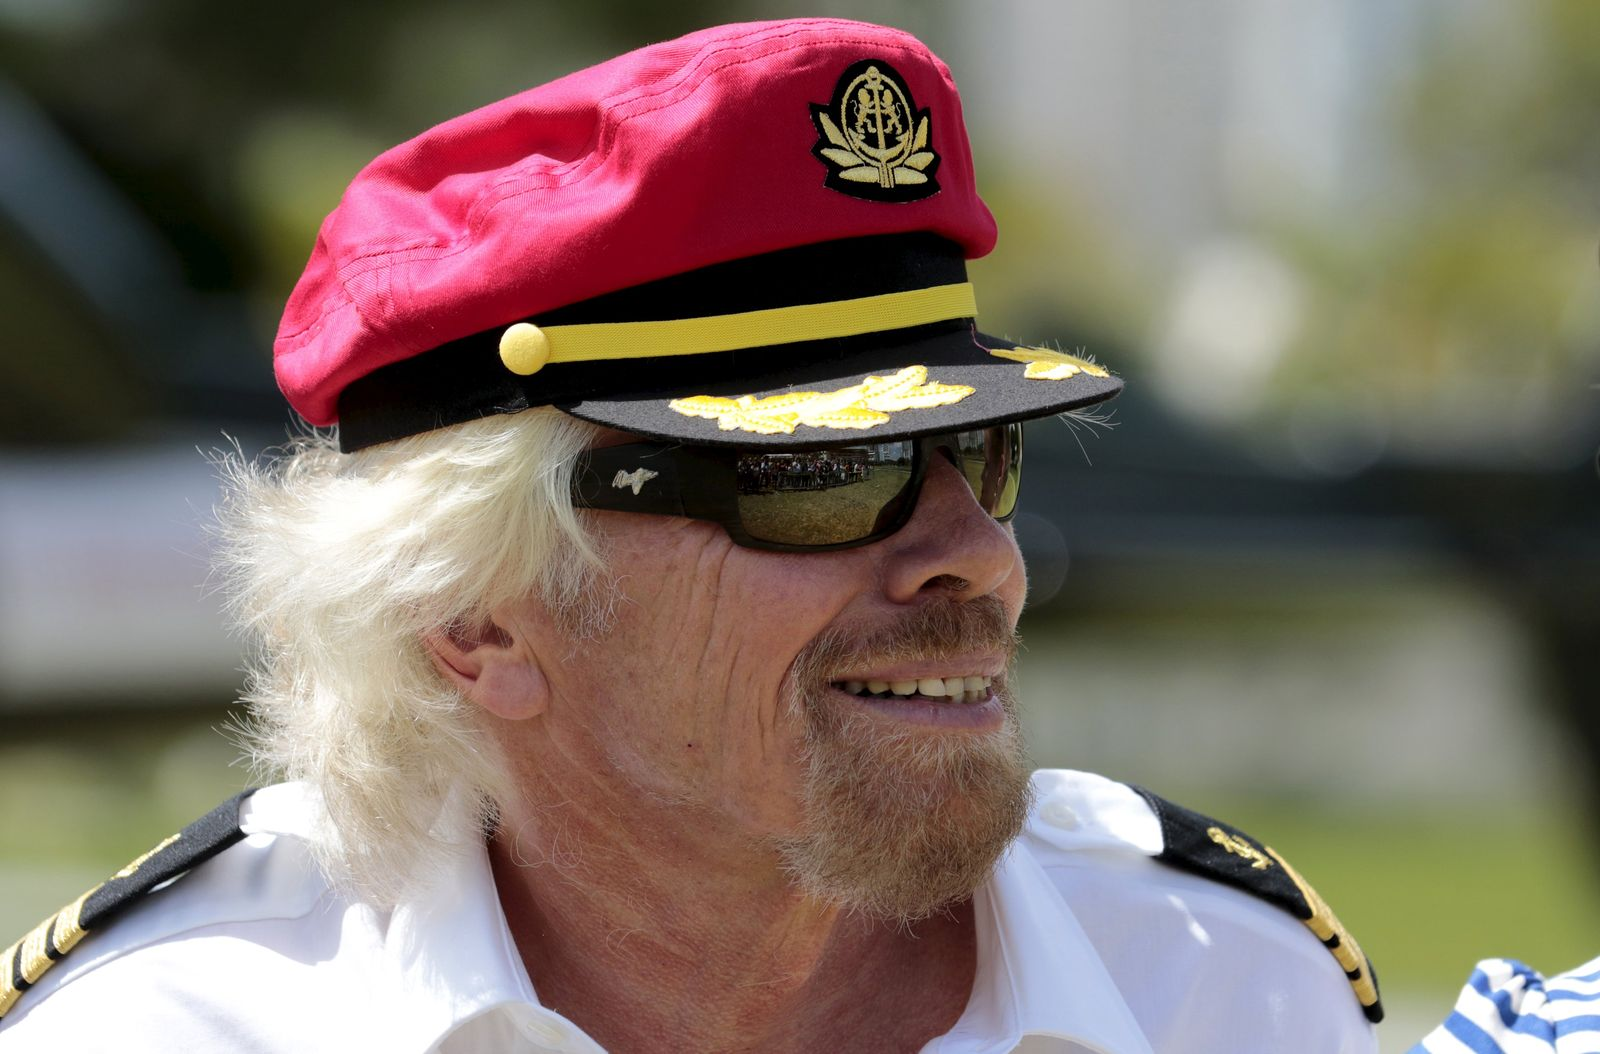 Richard Branson / Virgin Cruises